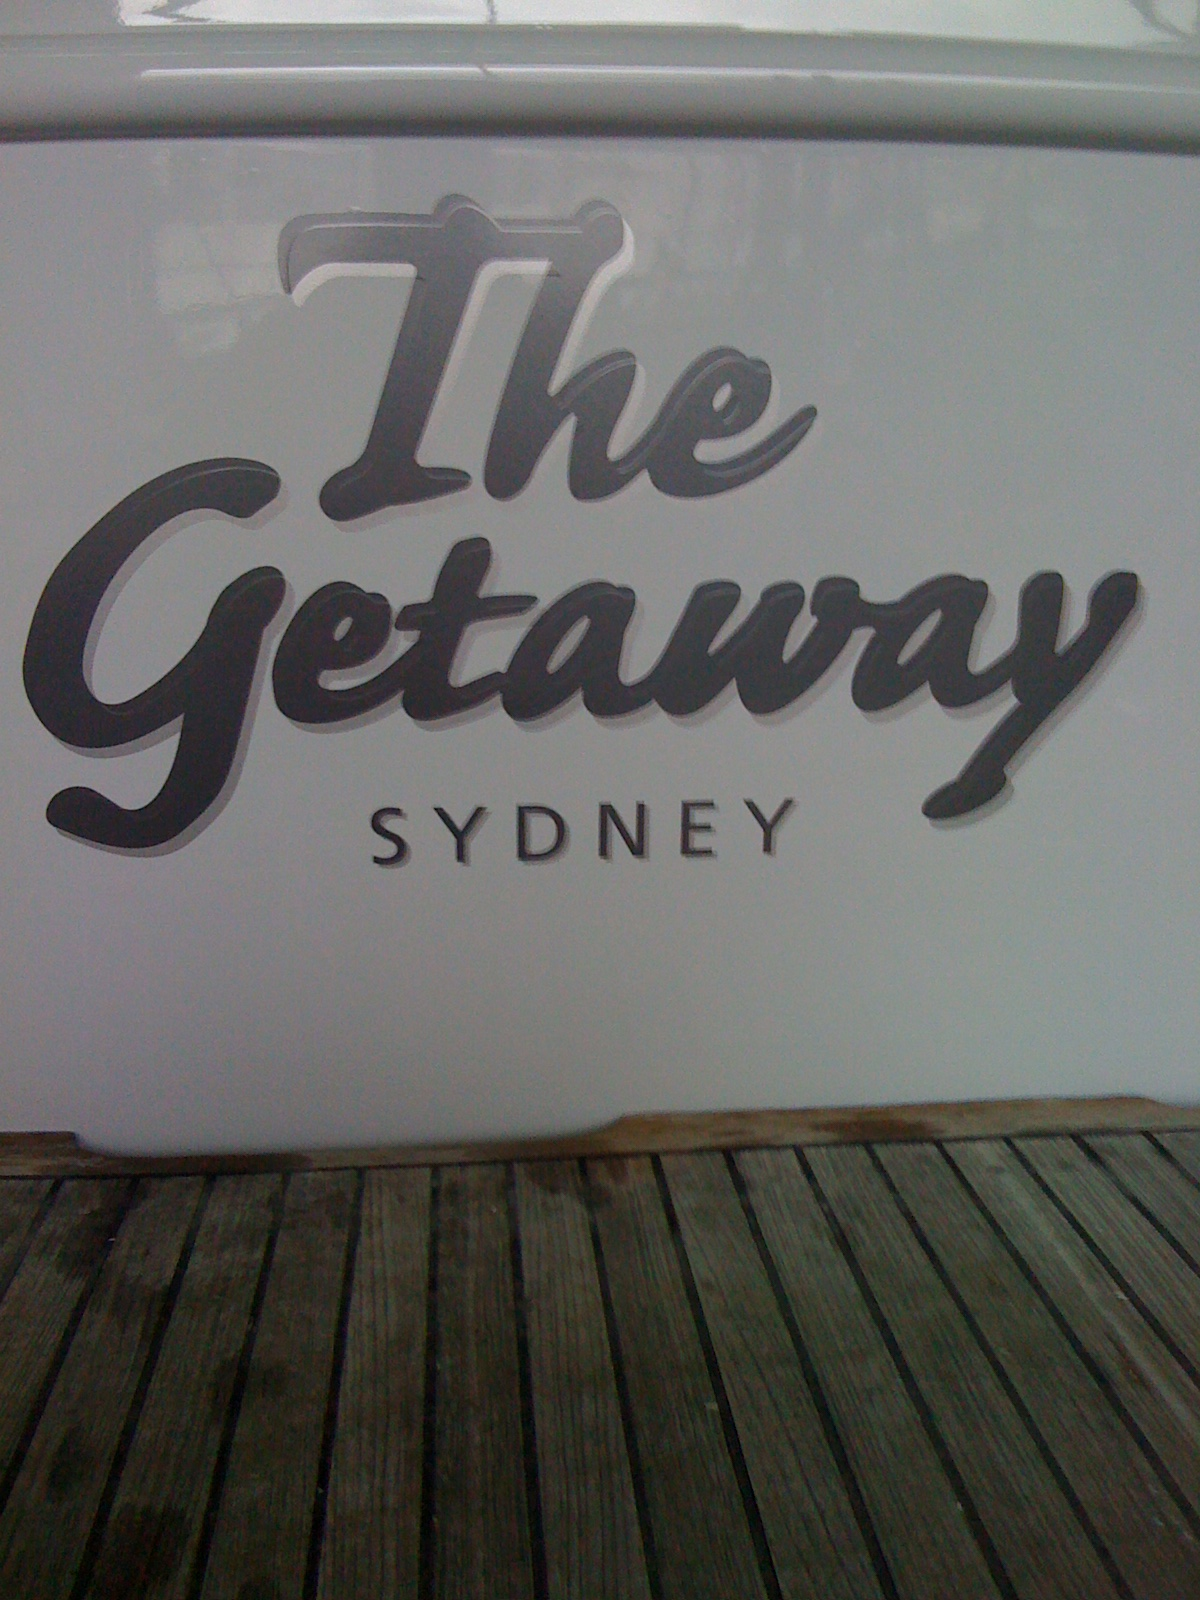 Jmac Graphics, Signage, Outdoor, Wrapping Boat, The Getaway Sydney